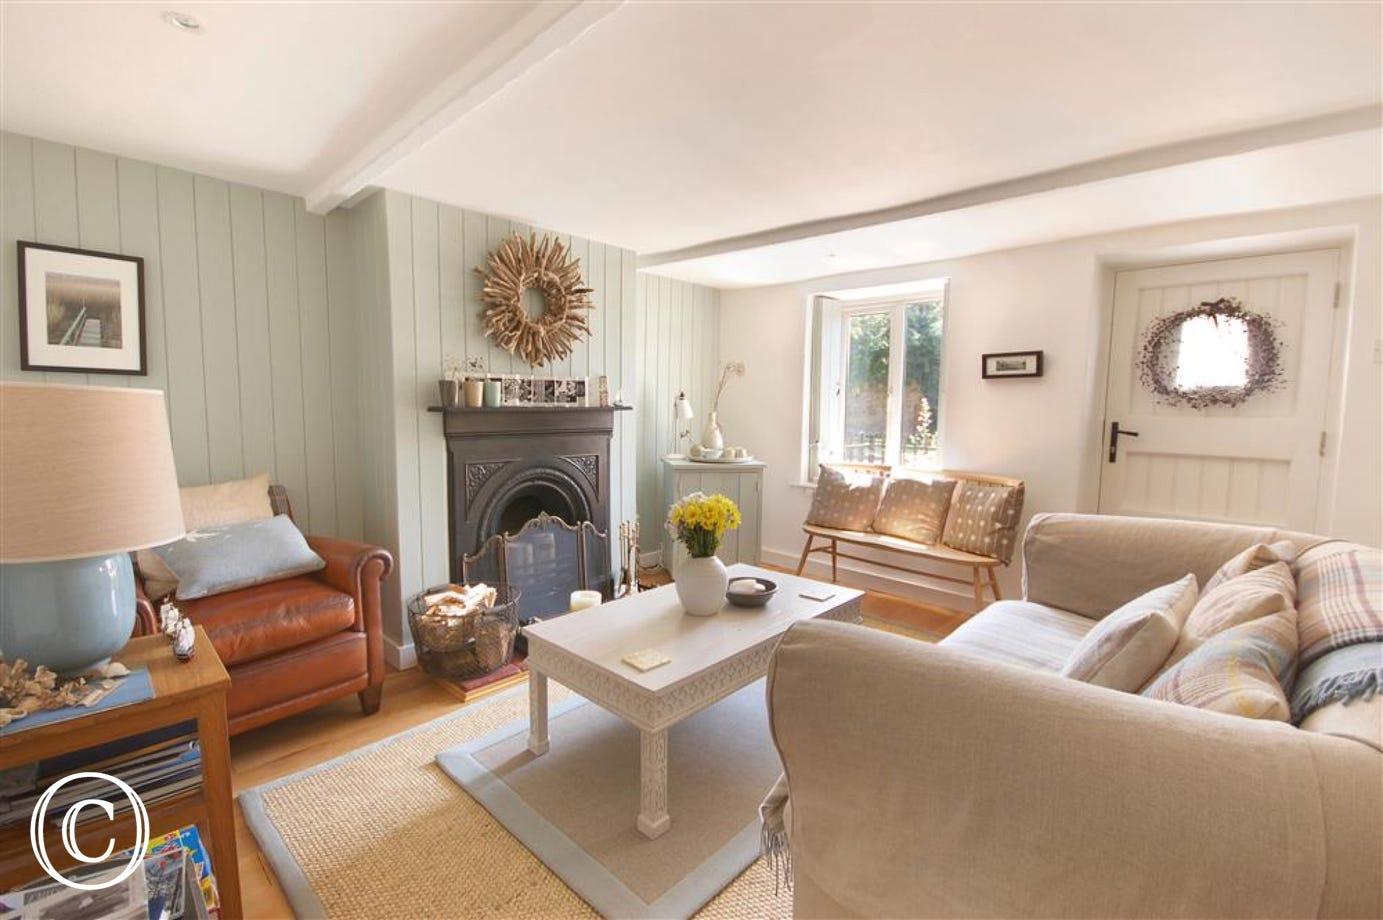 Beautifully decorated with a Shaker style, this makes a lovely family room